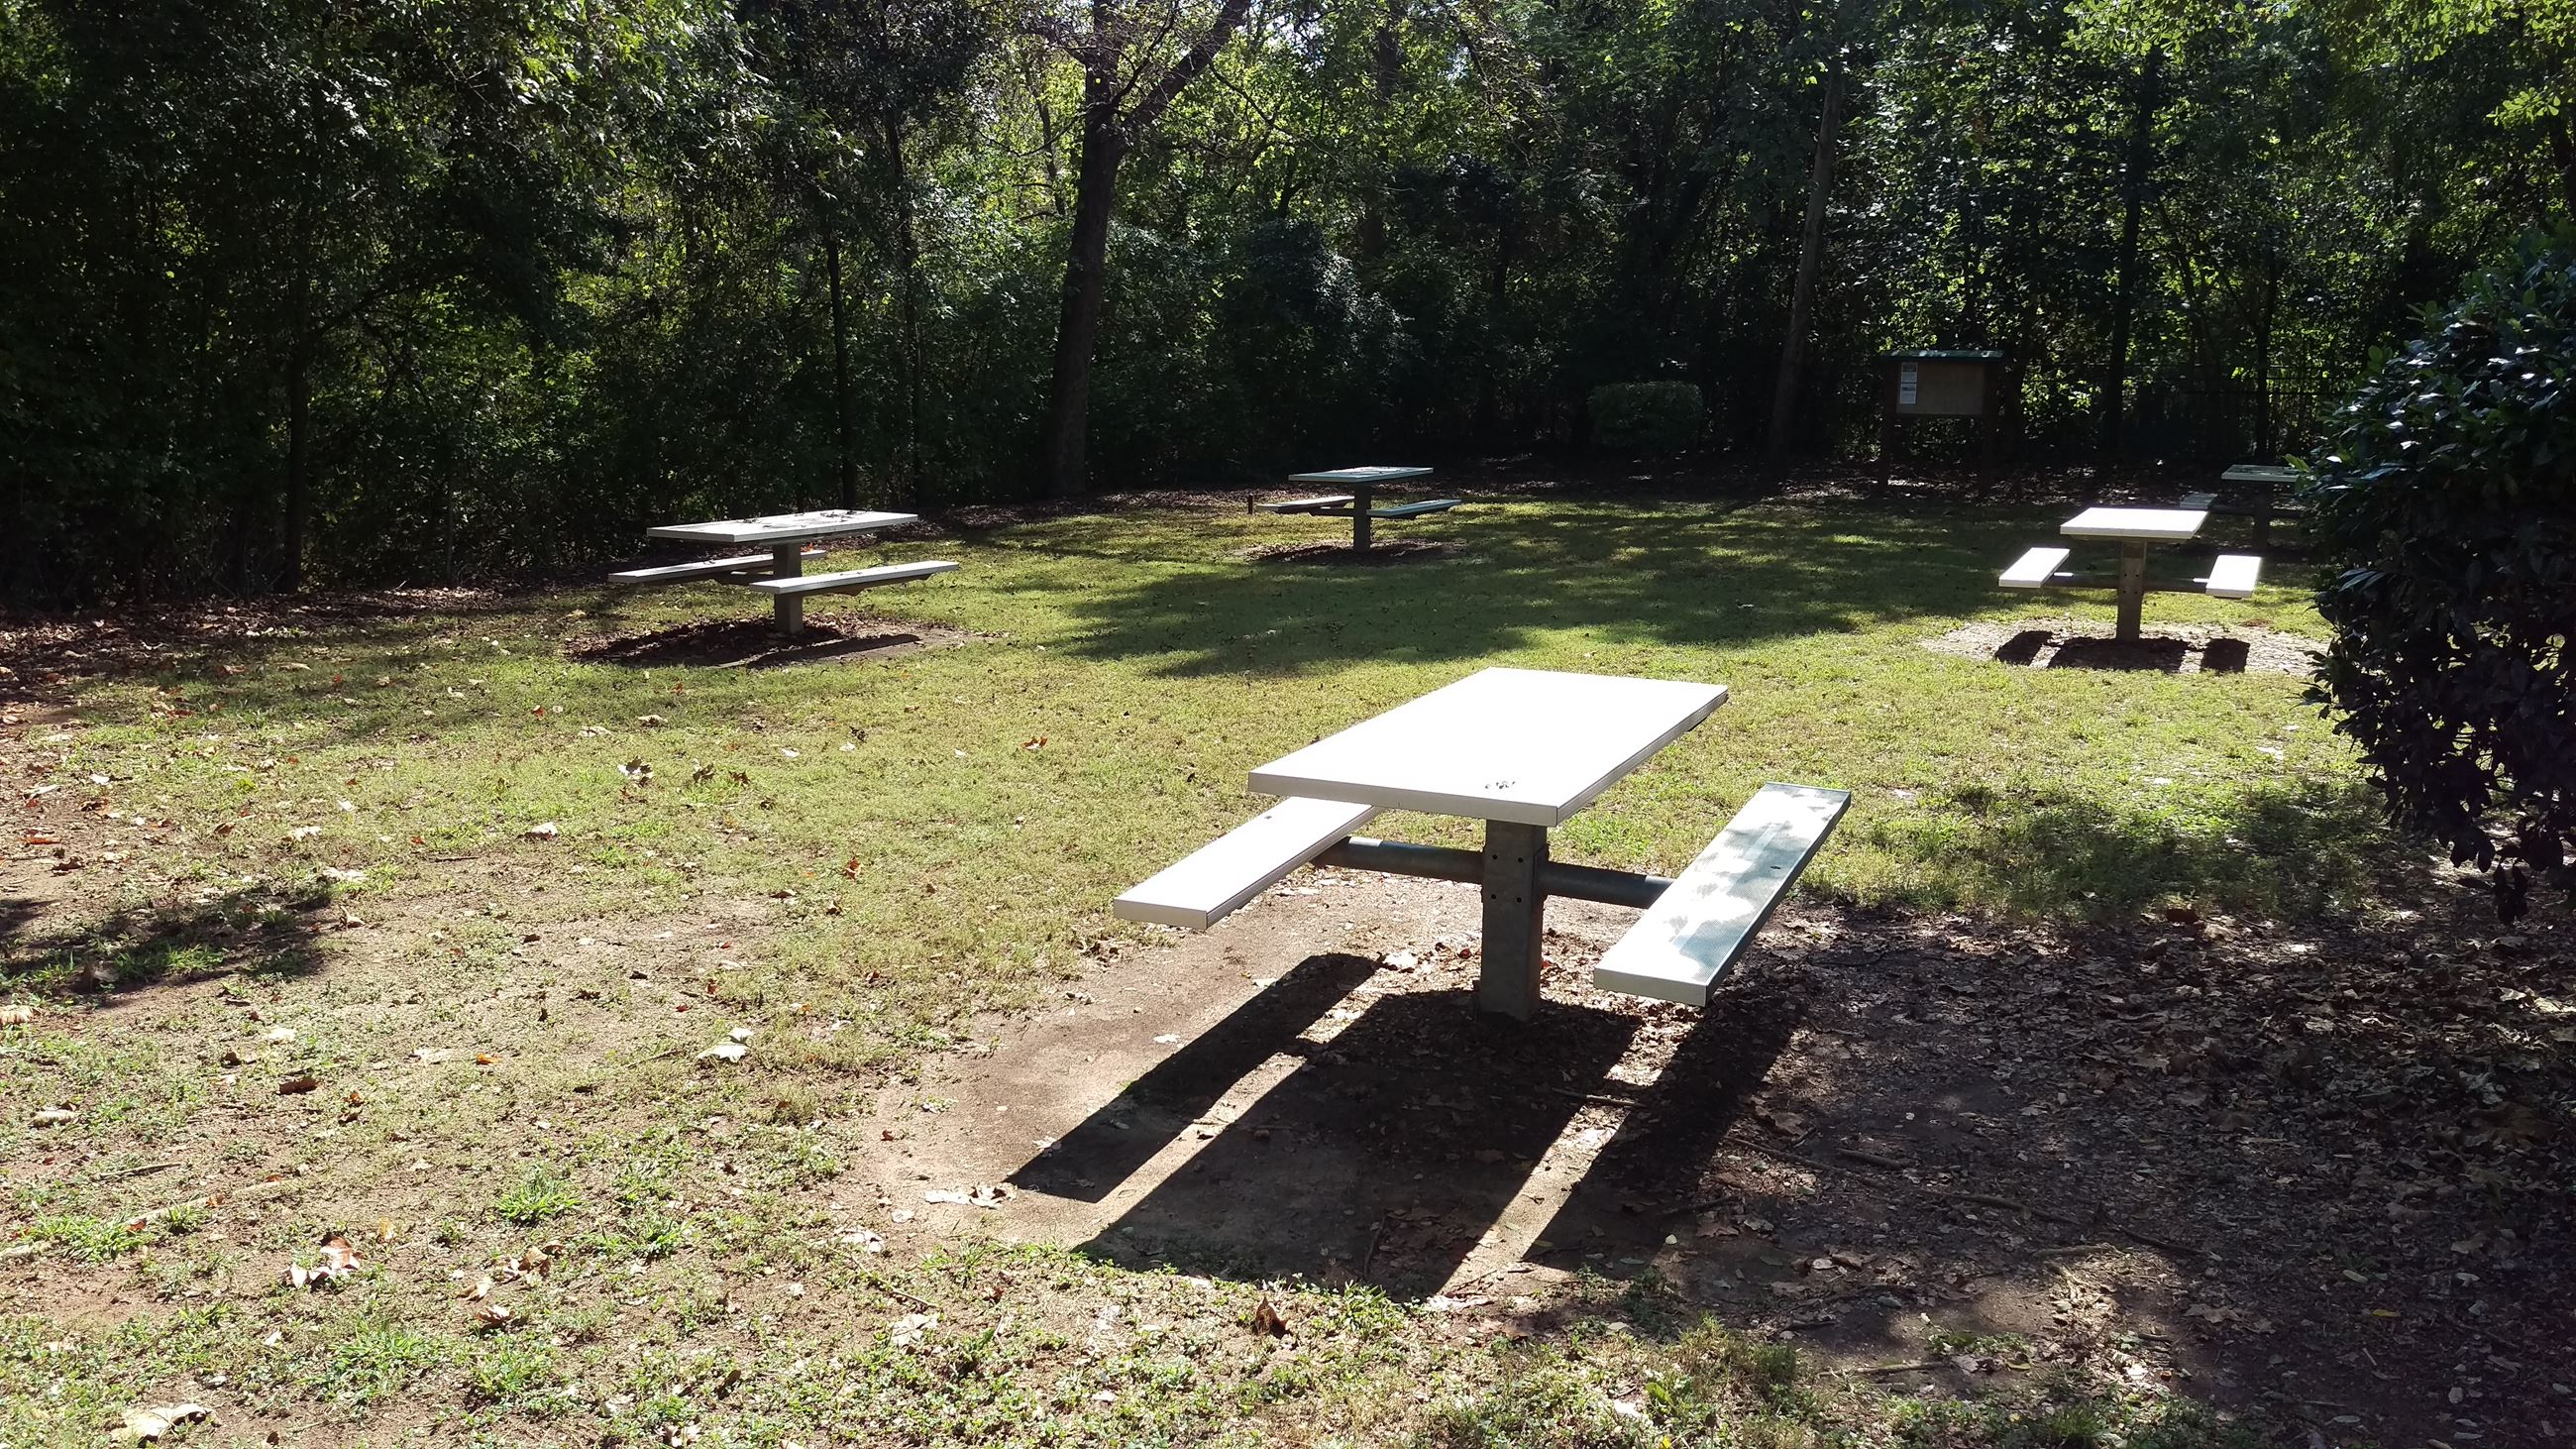 Photo of the Picnic Area adjacent to Weaver D's in Dudley Park.